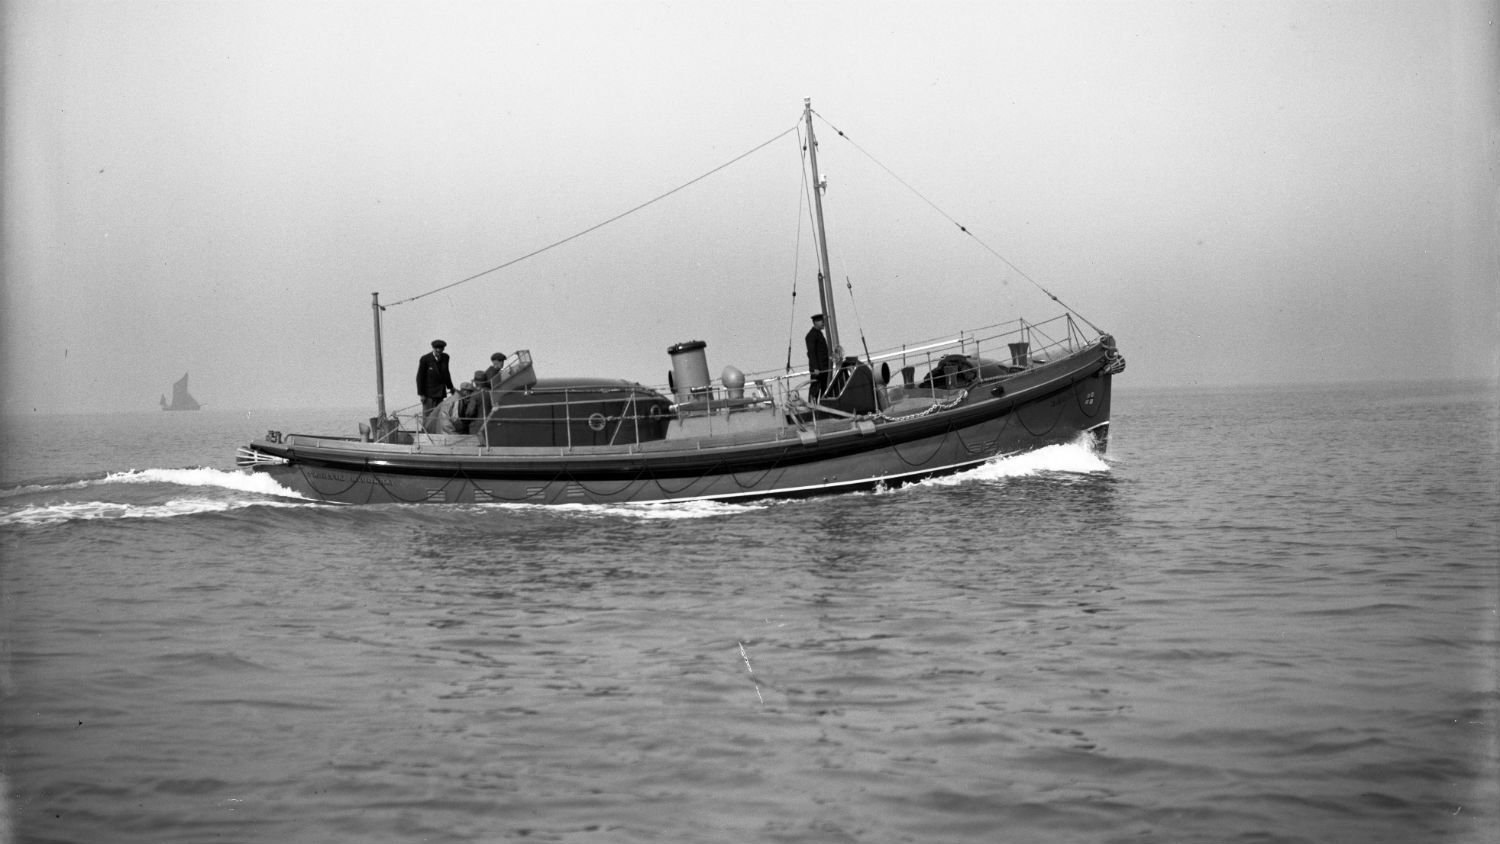 Black and white image of Yarmouth lifeboat S.G.E., on trials, while on trials